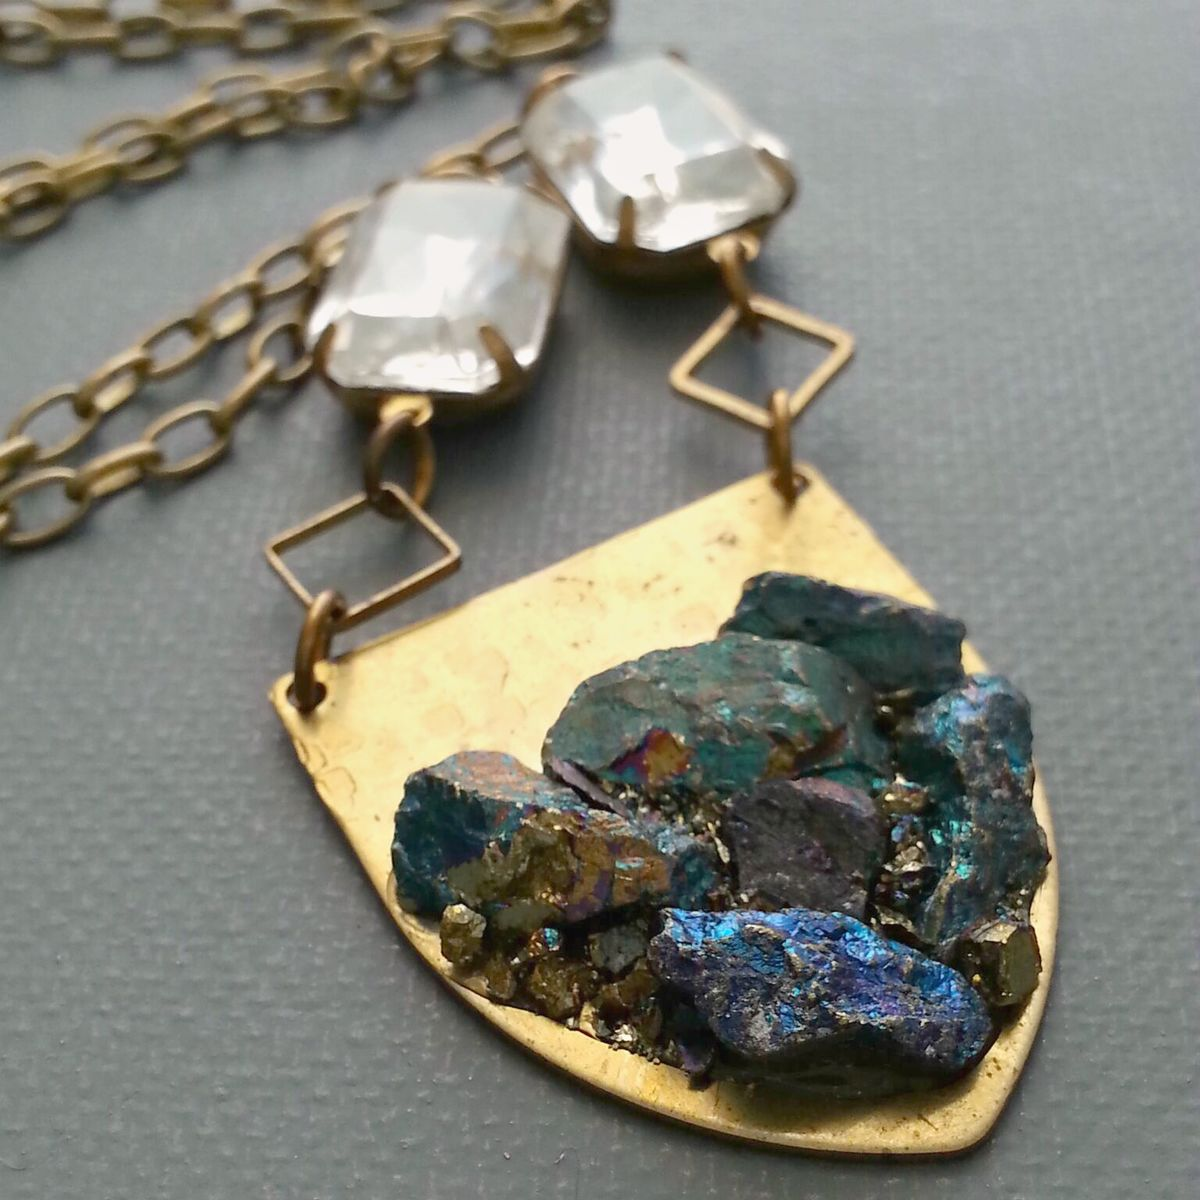 Crushed Peacock Ore and Brass Shield Pendant Necklace - product images  of